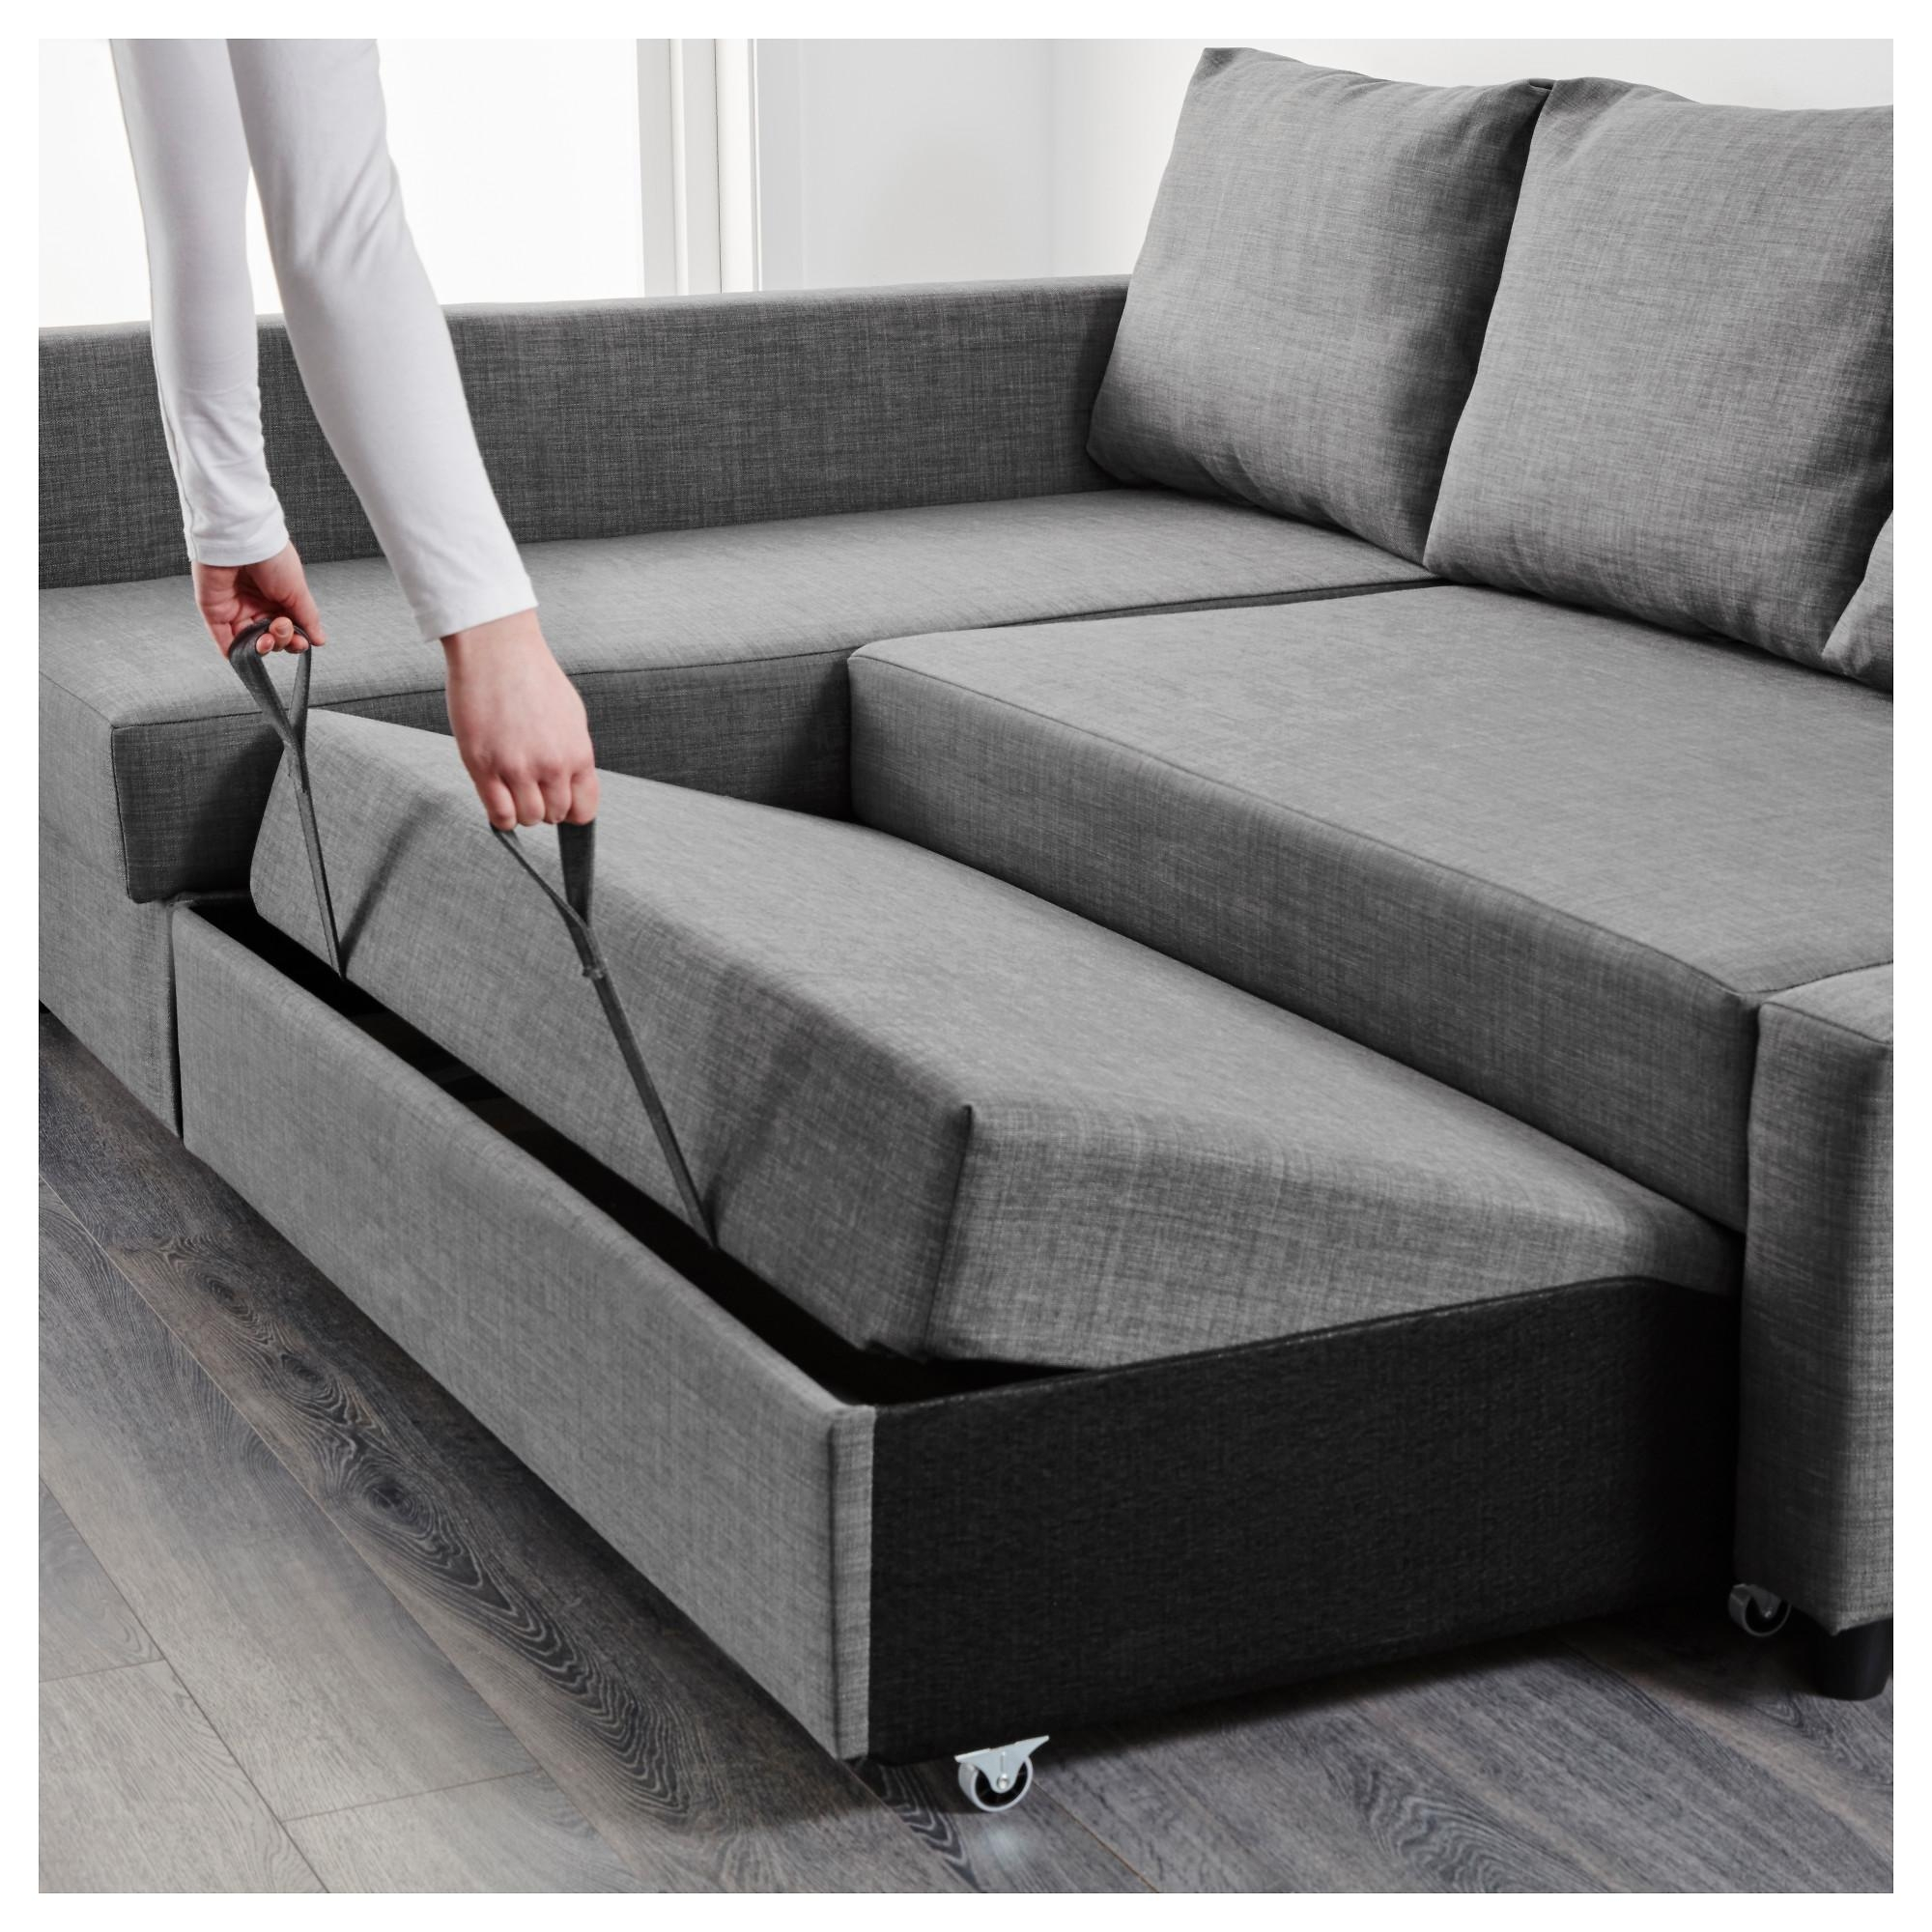 Friheten Corner Sofa Bed With Storage – Skiftebo Dark Grey – Ikea Inside Ikea Chaise Lounge Sofa (Image 7 of 20)